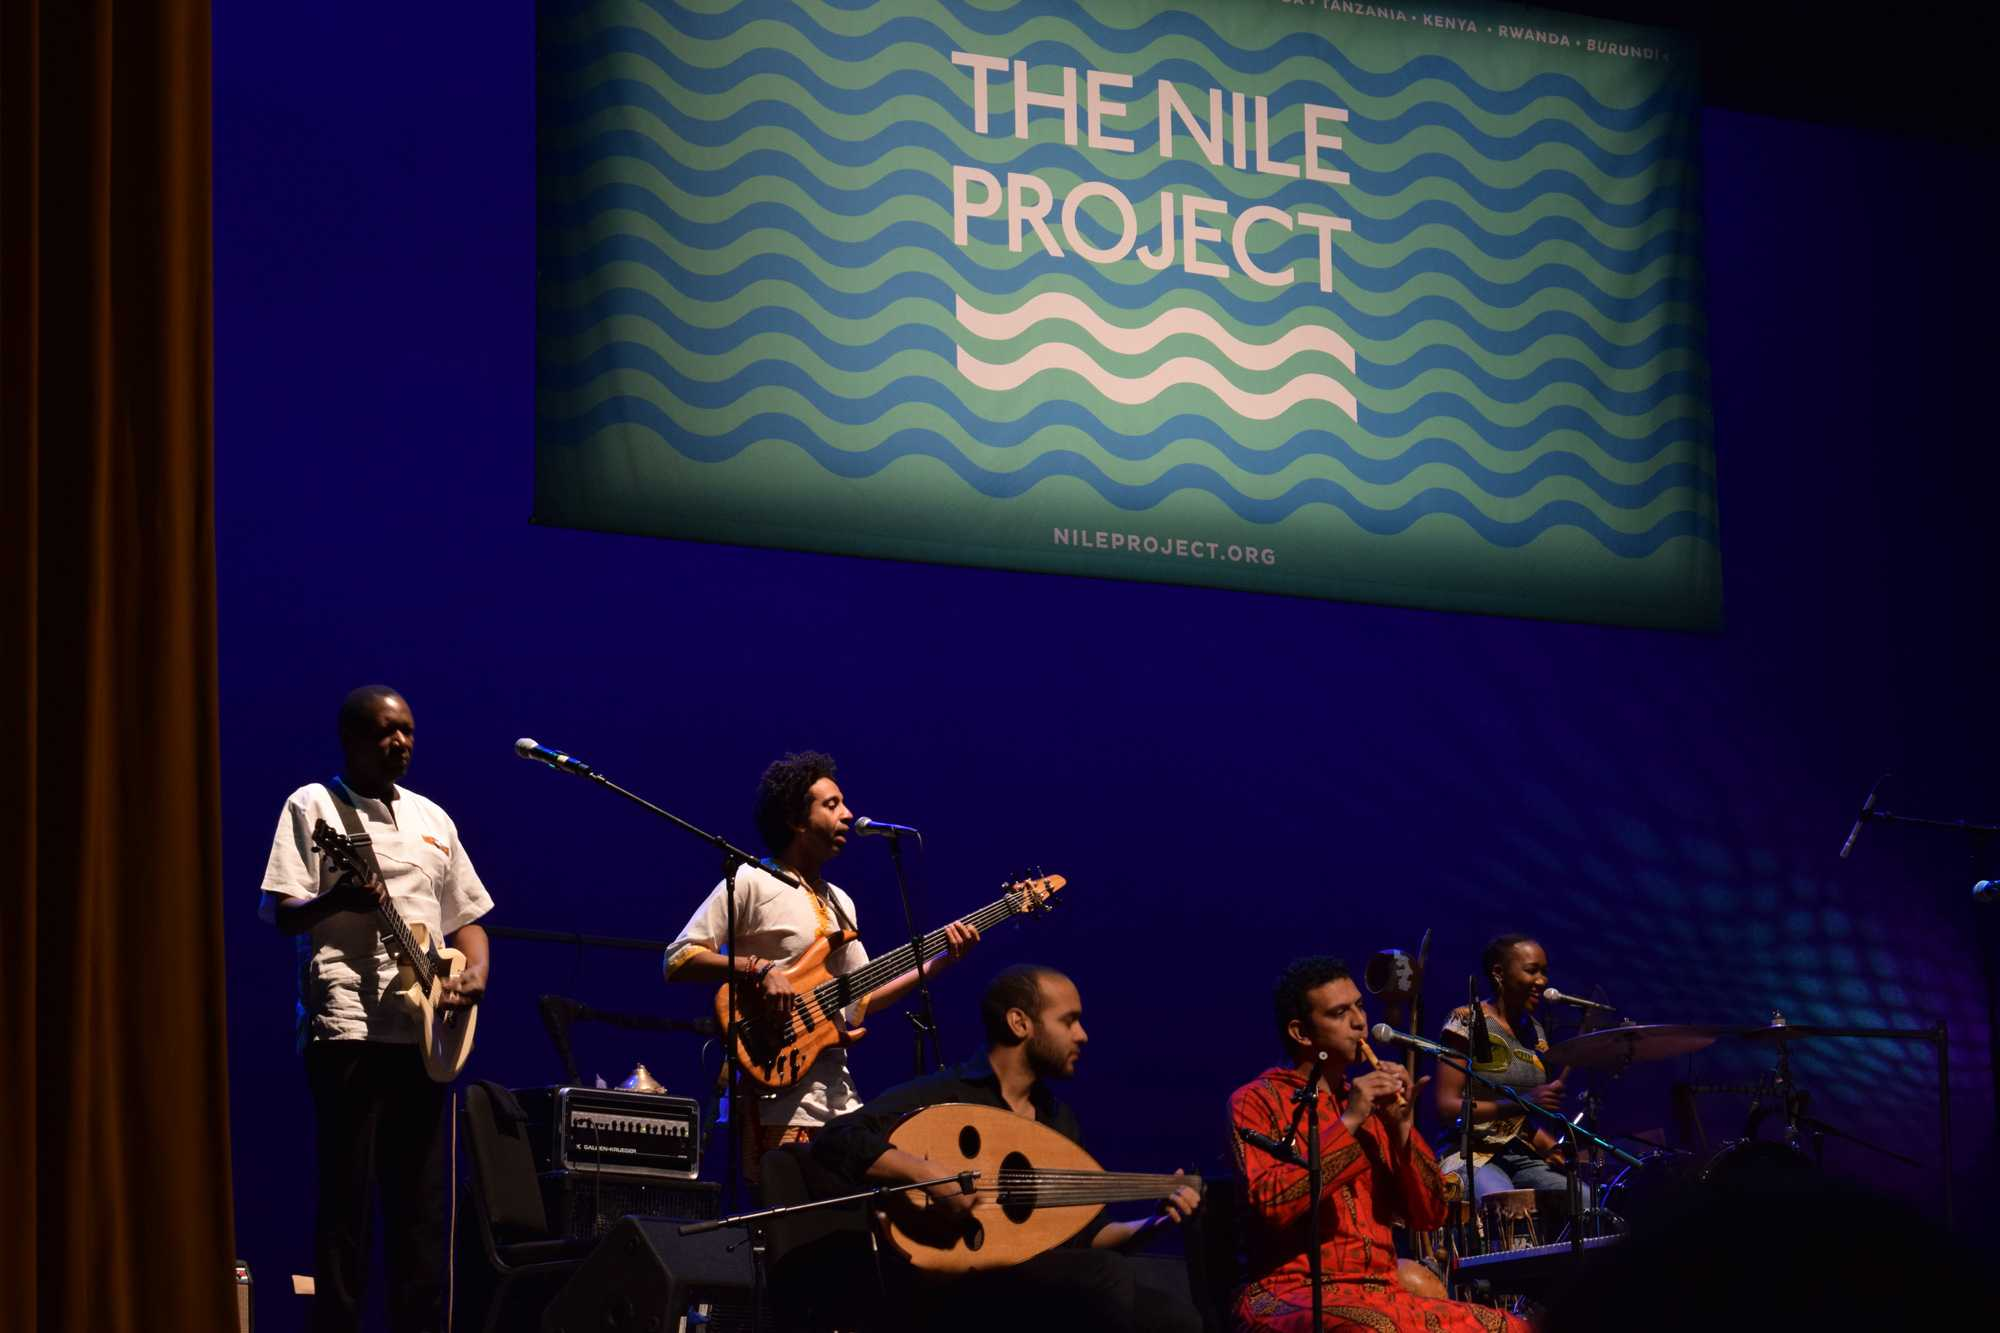 The Nile Project: sustainability through music and dance